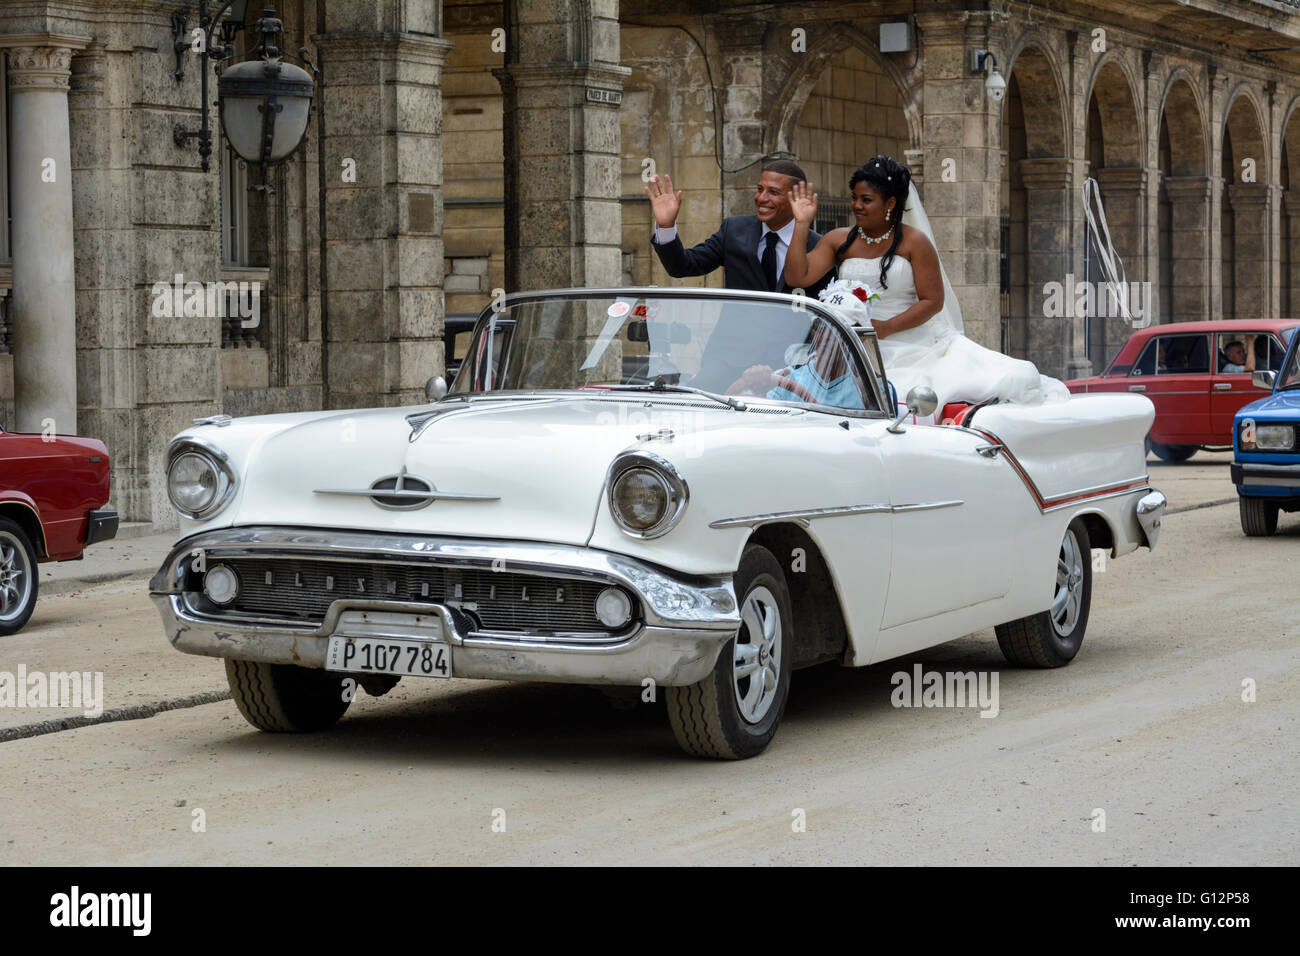 Newly weds celebrate their wedding with a tour of Havana in an open ...